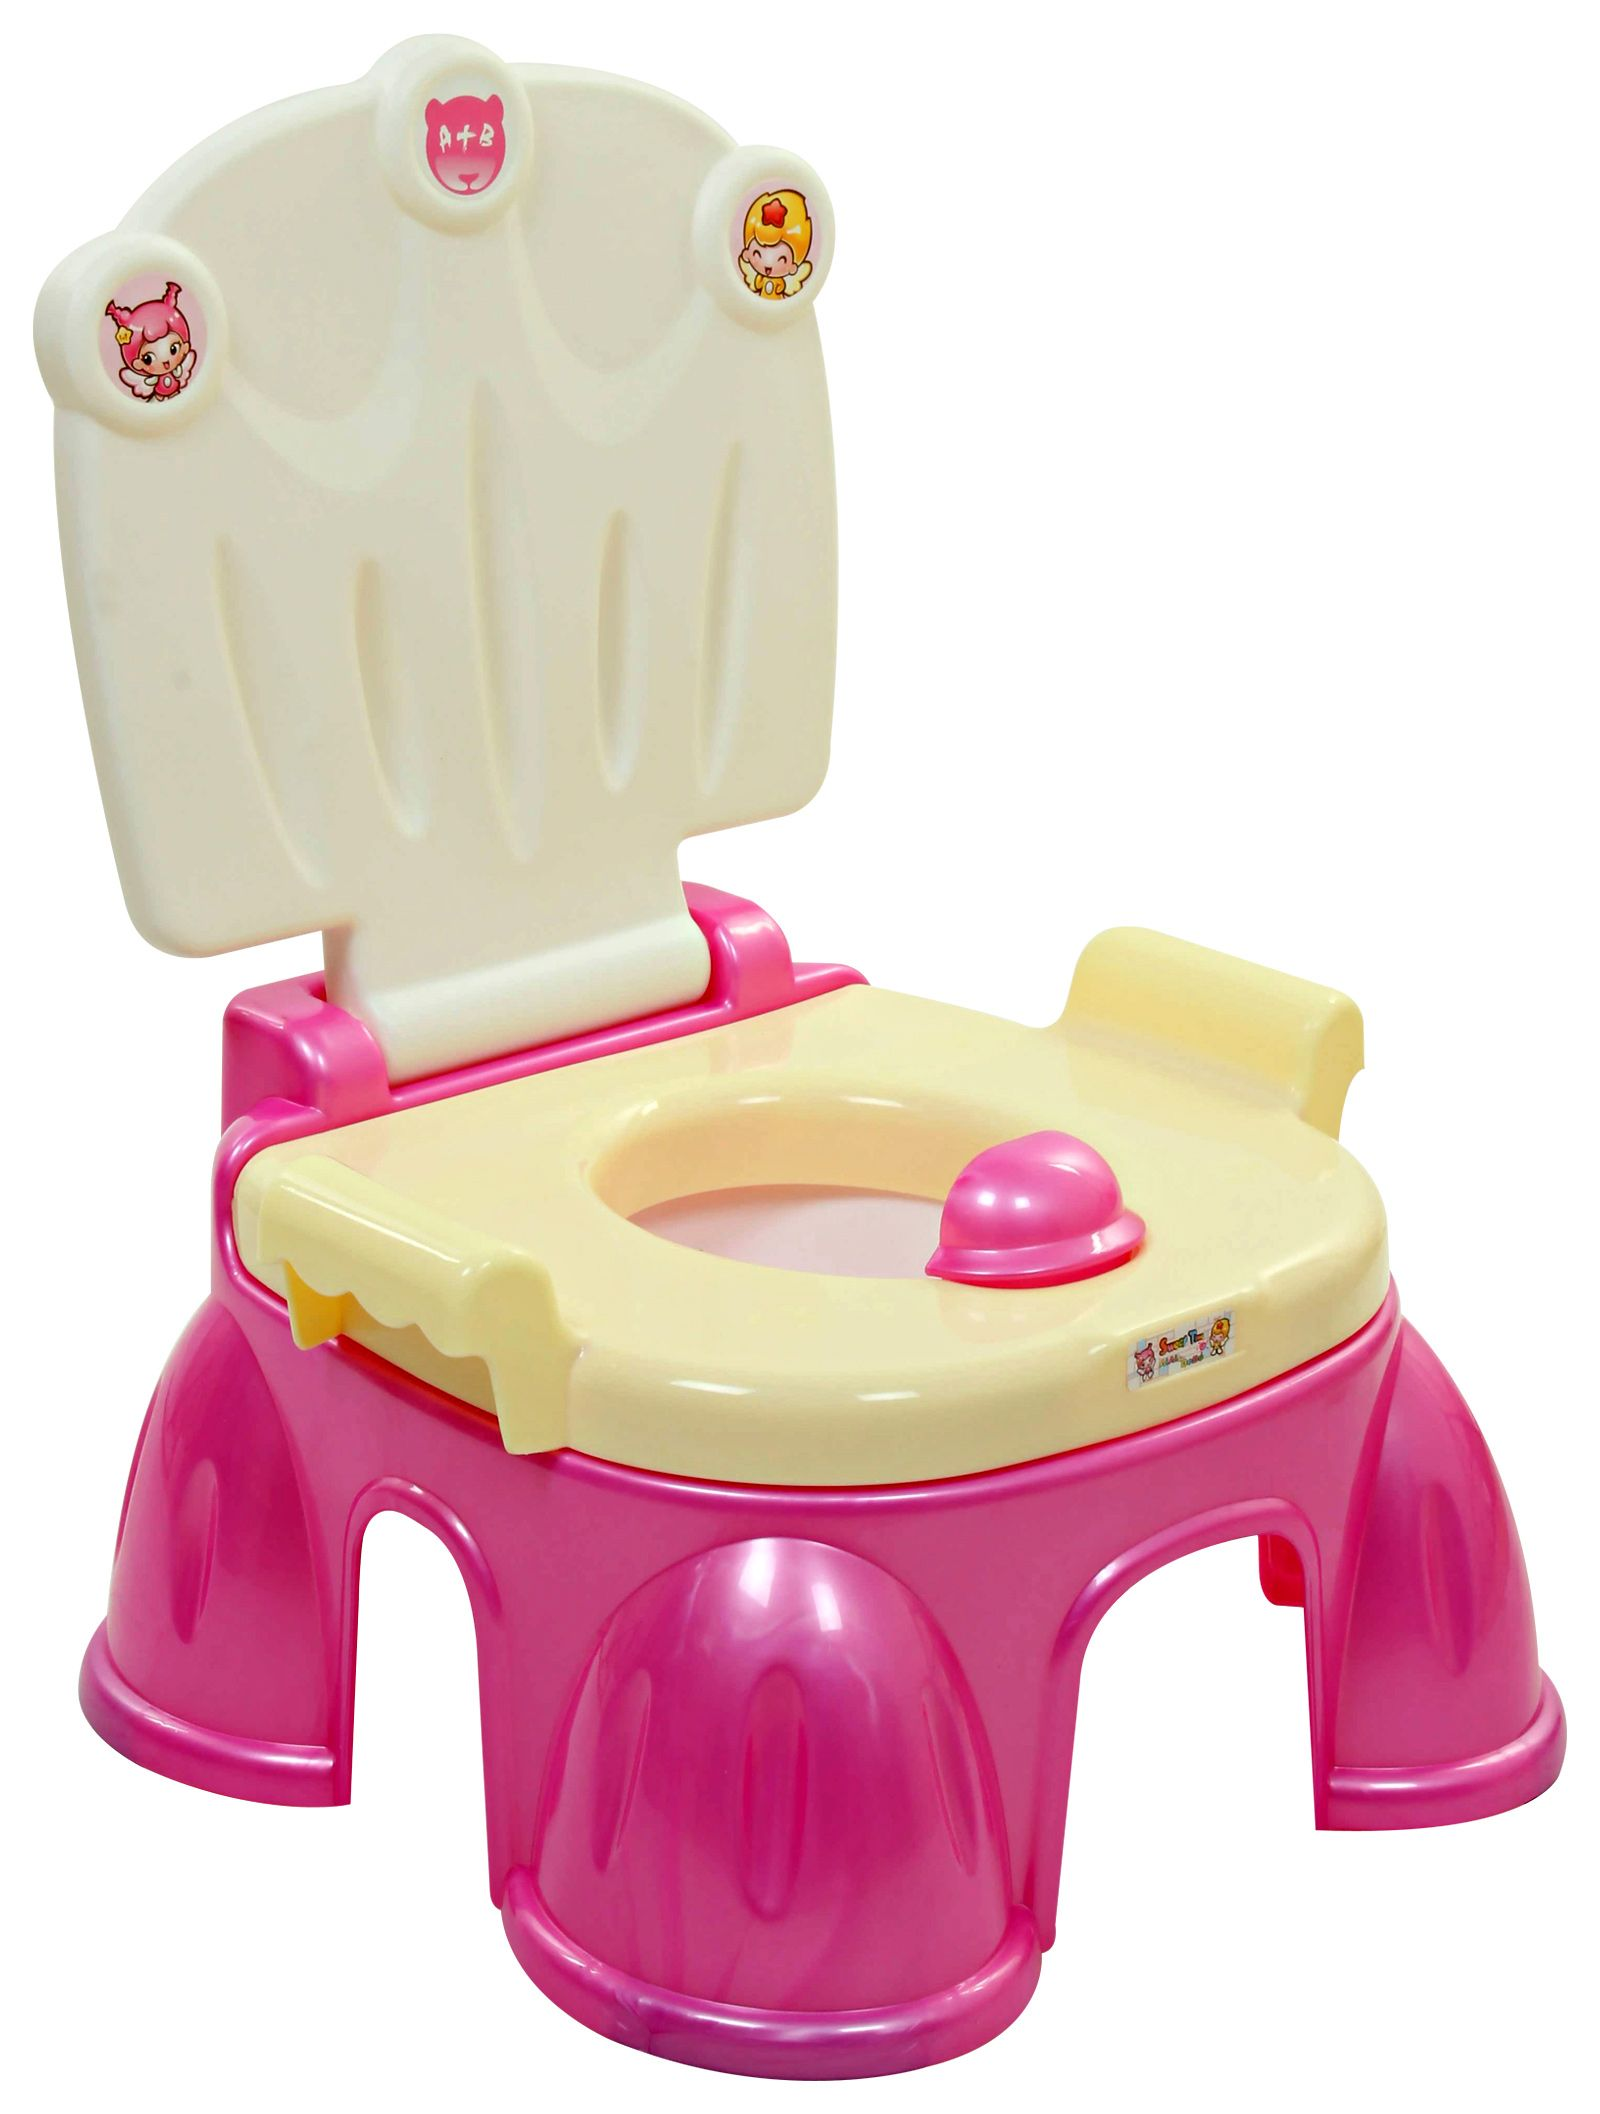 Baby Potty - Chair Pattern